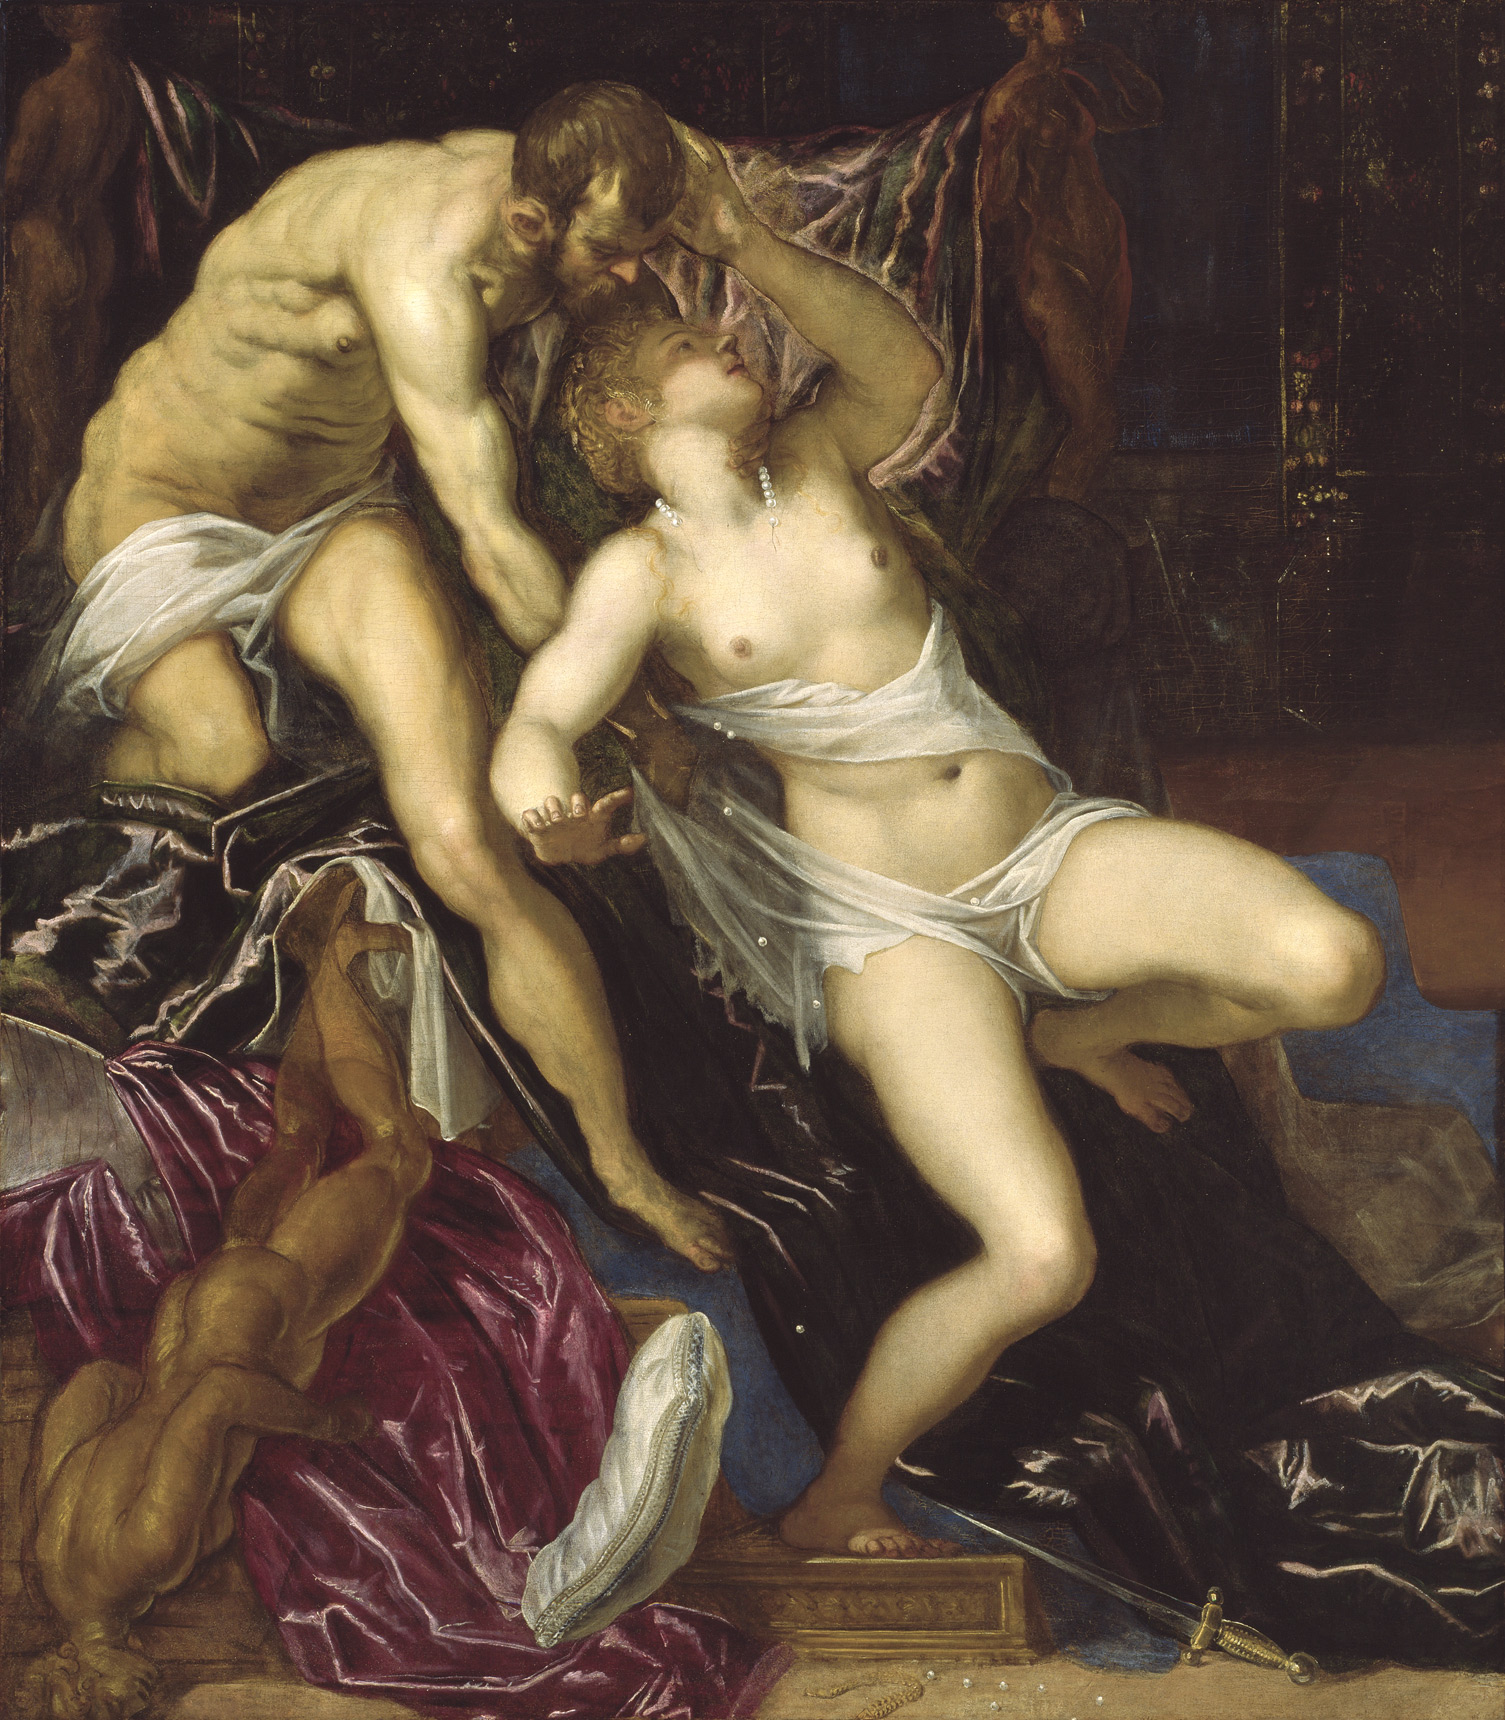 Tarquin and Lucretia, by Tintoretto